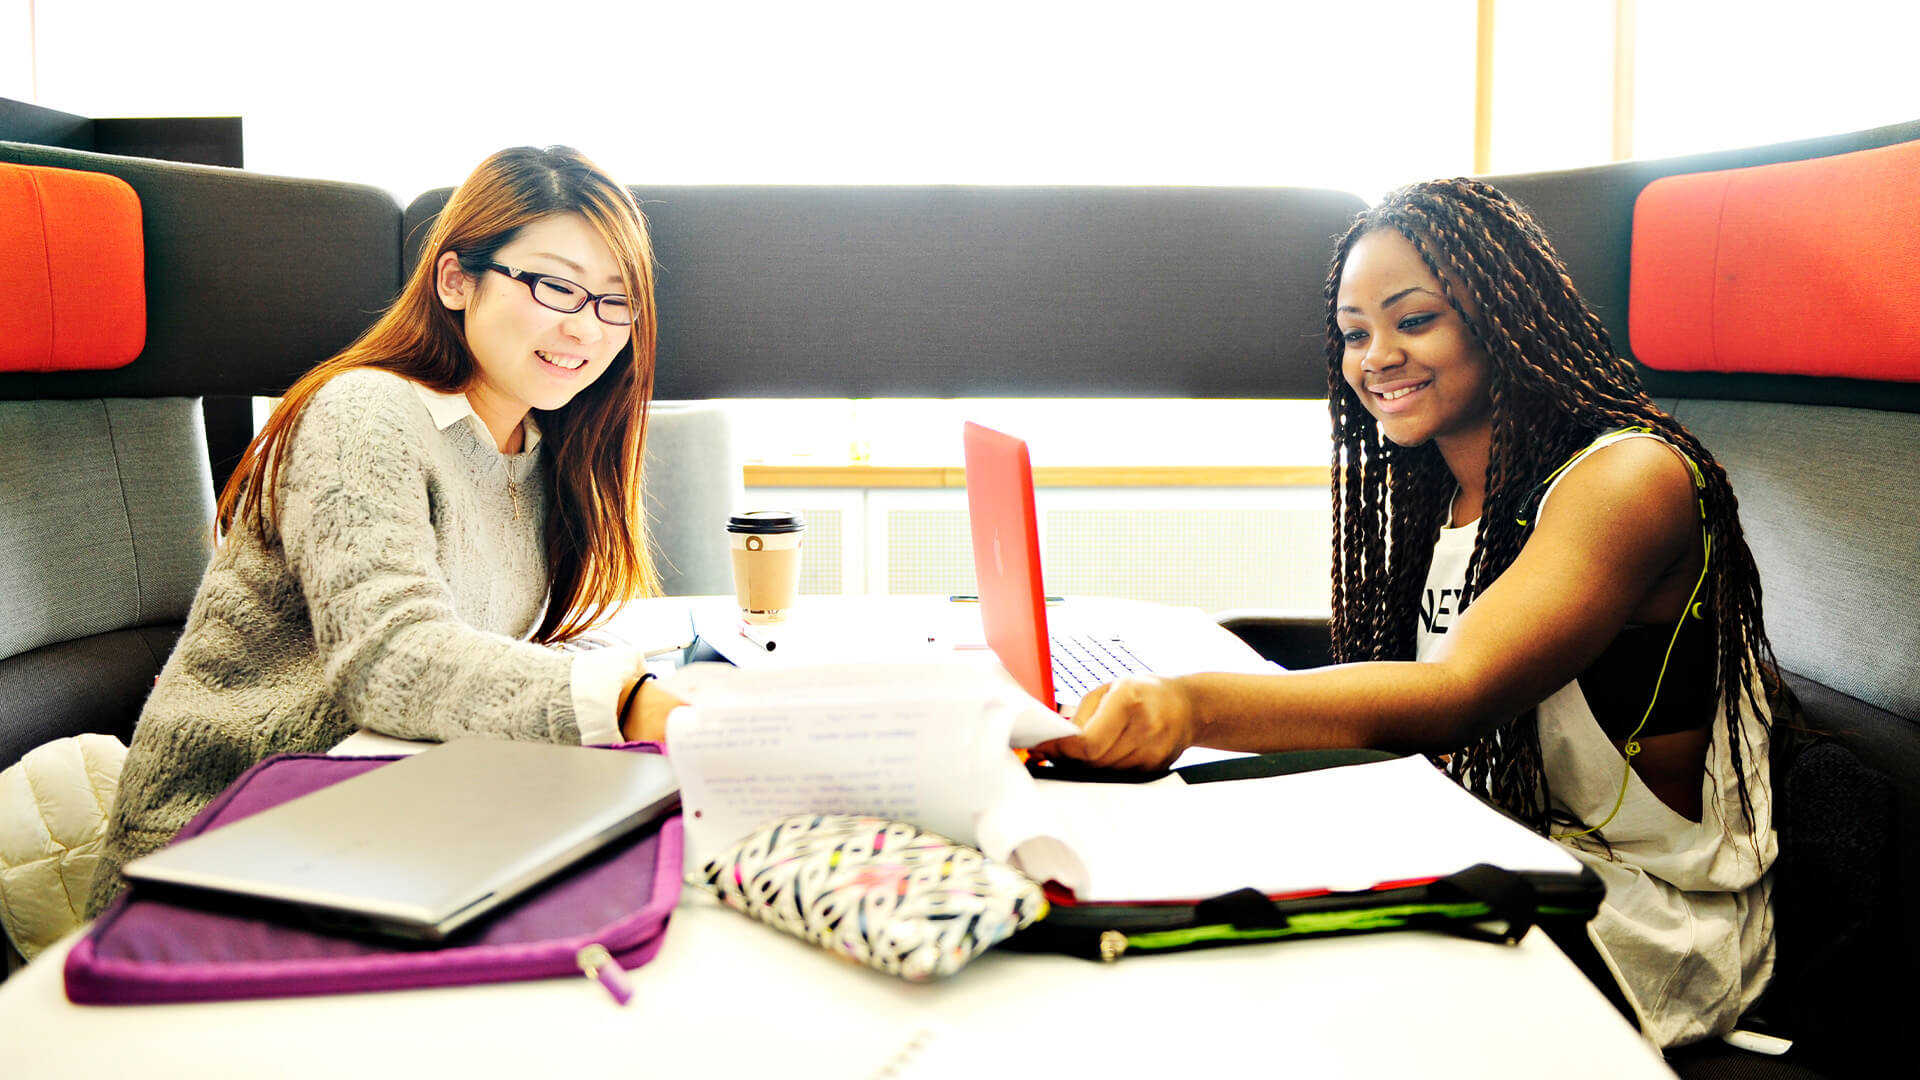 Students studying in a breakout area on-campus at the University of Manchester